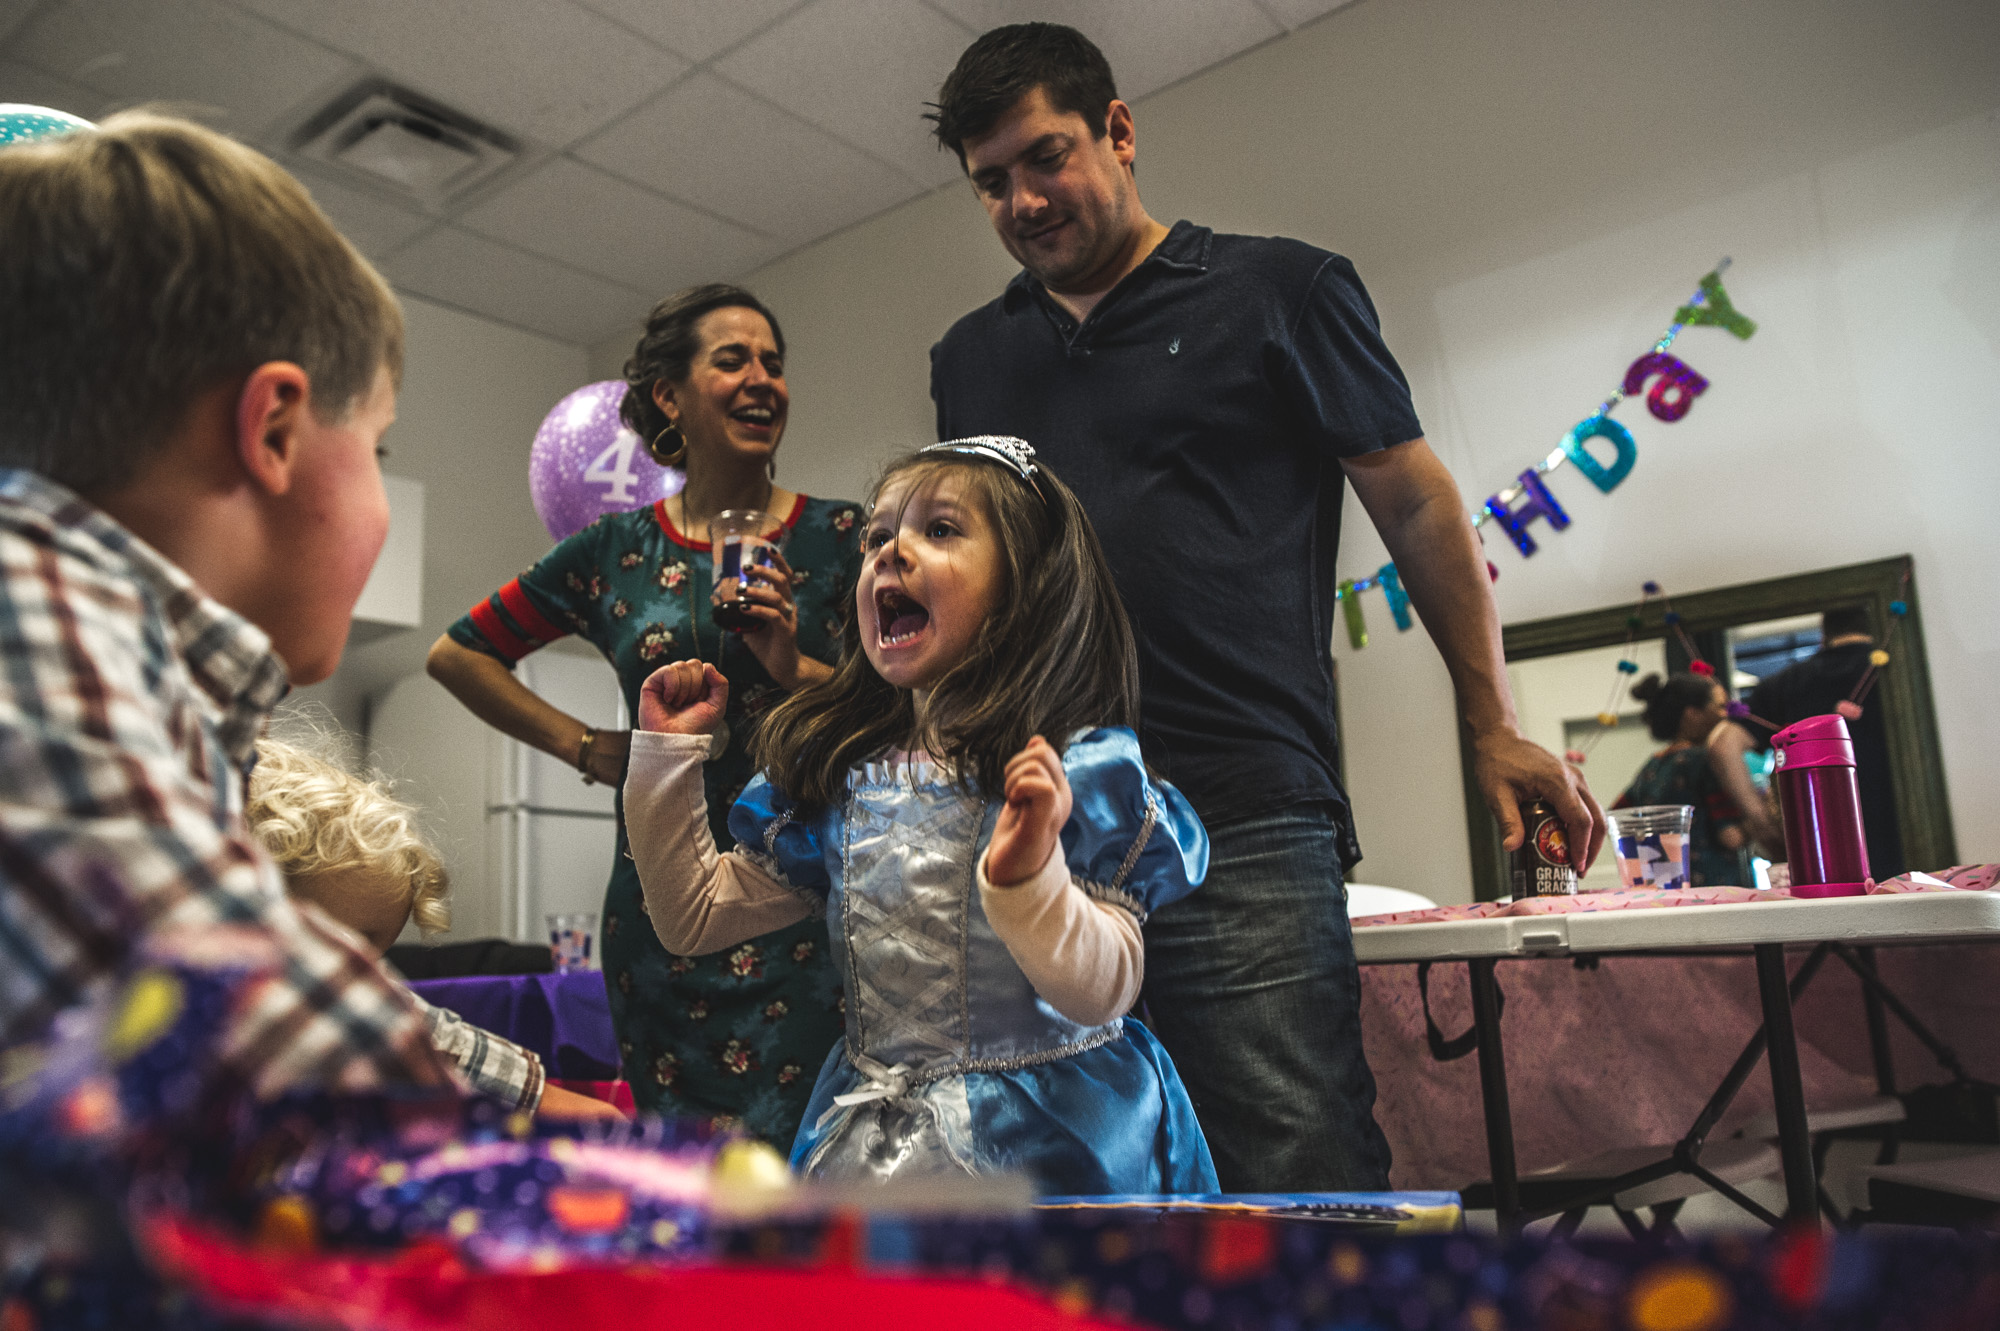 A little girl jumps for joy as her parents look on. The little girl is wearing a princess dress and crown and is celebrating her birthday at Family Connections kids' gym in Littleton, Colorado. Photo is in color.